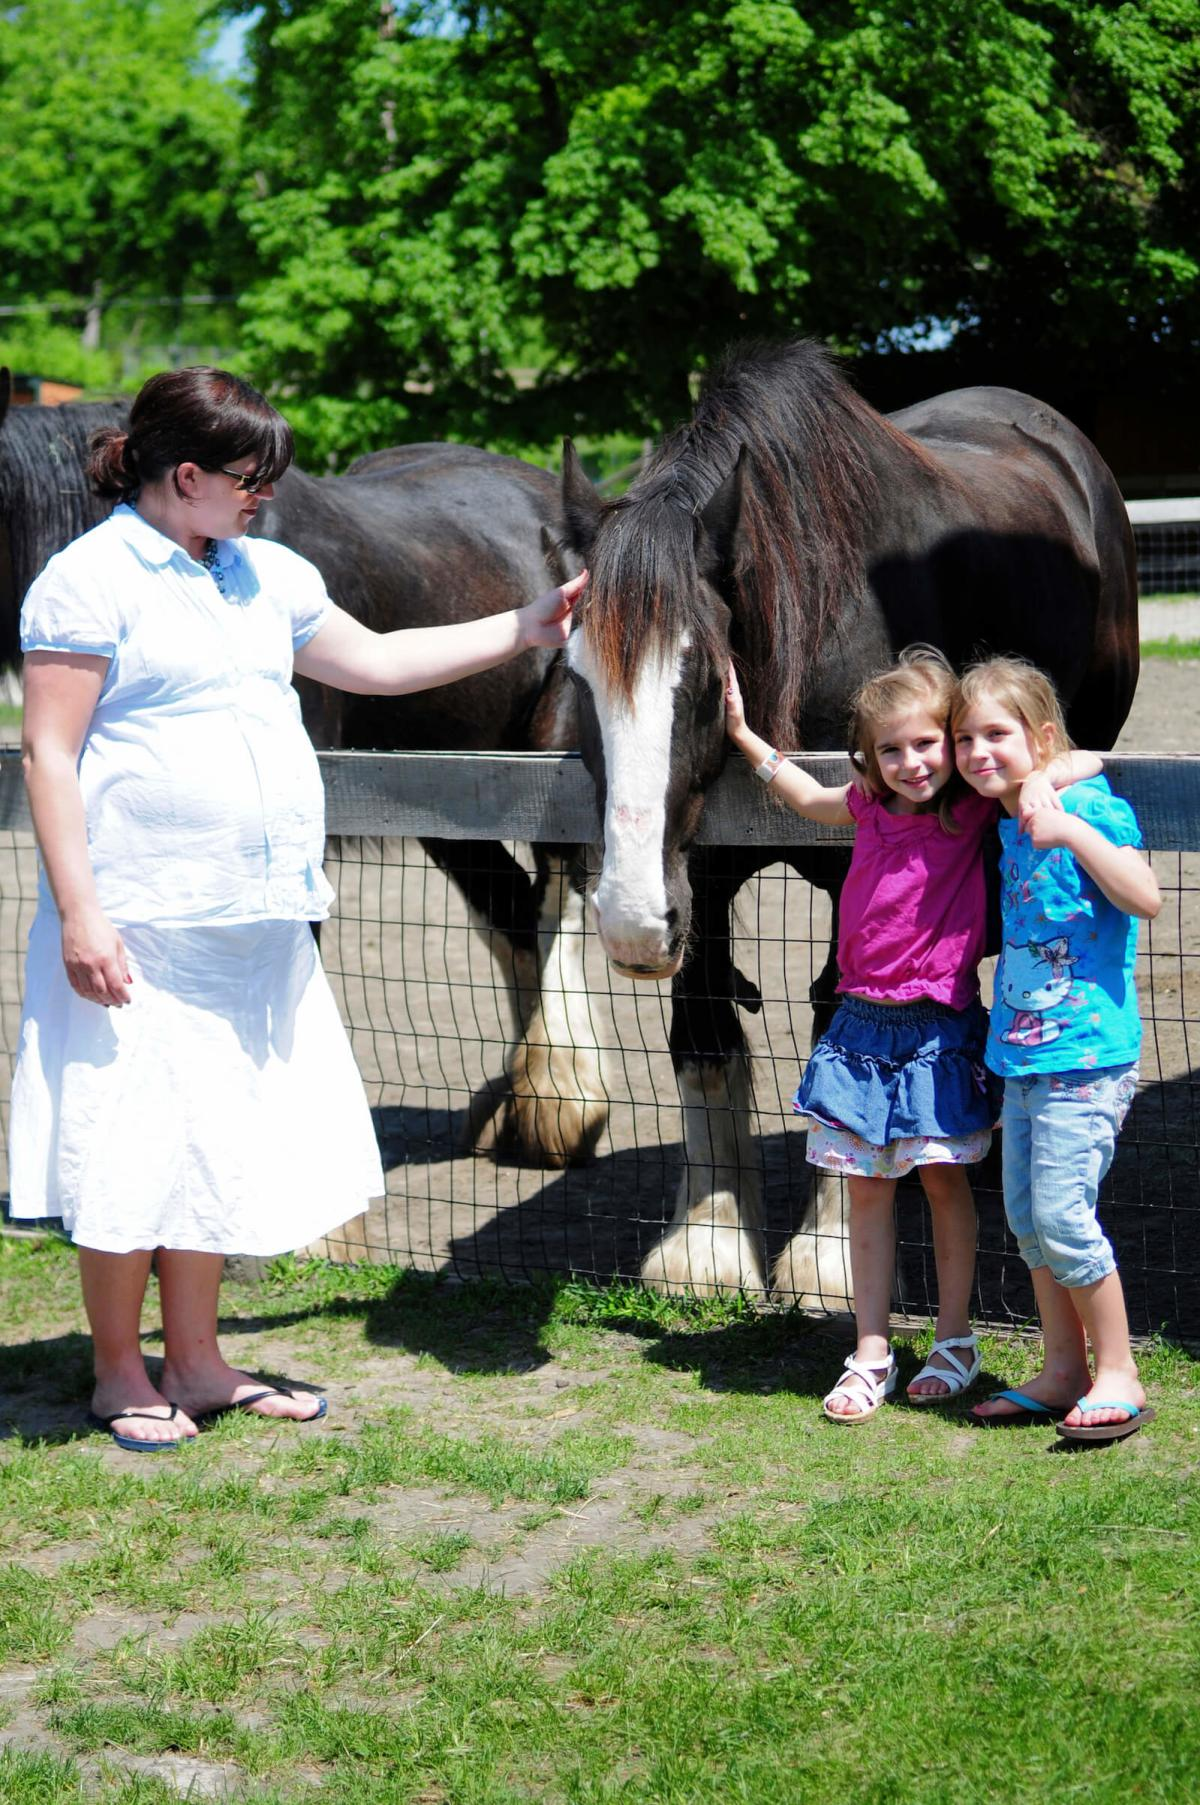 Mom and Daughters Petting a Horse at the Saginaw Children's Zoo